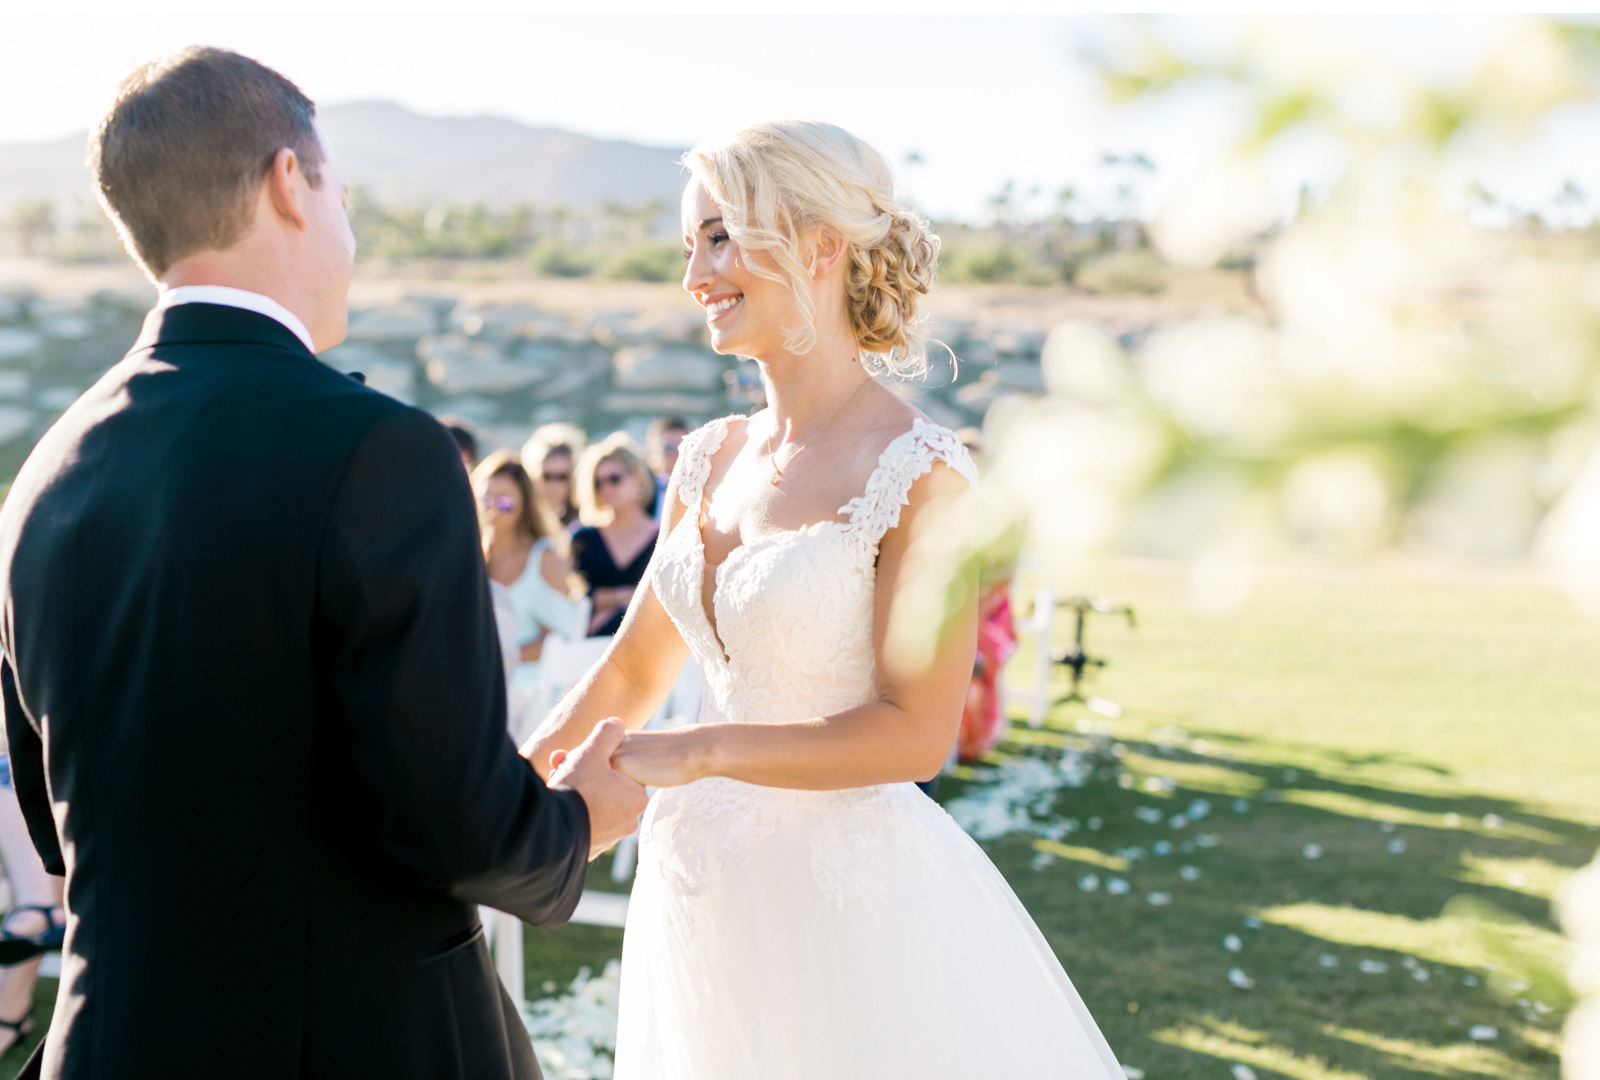 Style-Me-Pretty-Cabo-Wedding-Natalie-Schutt-Photography_07.jpg